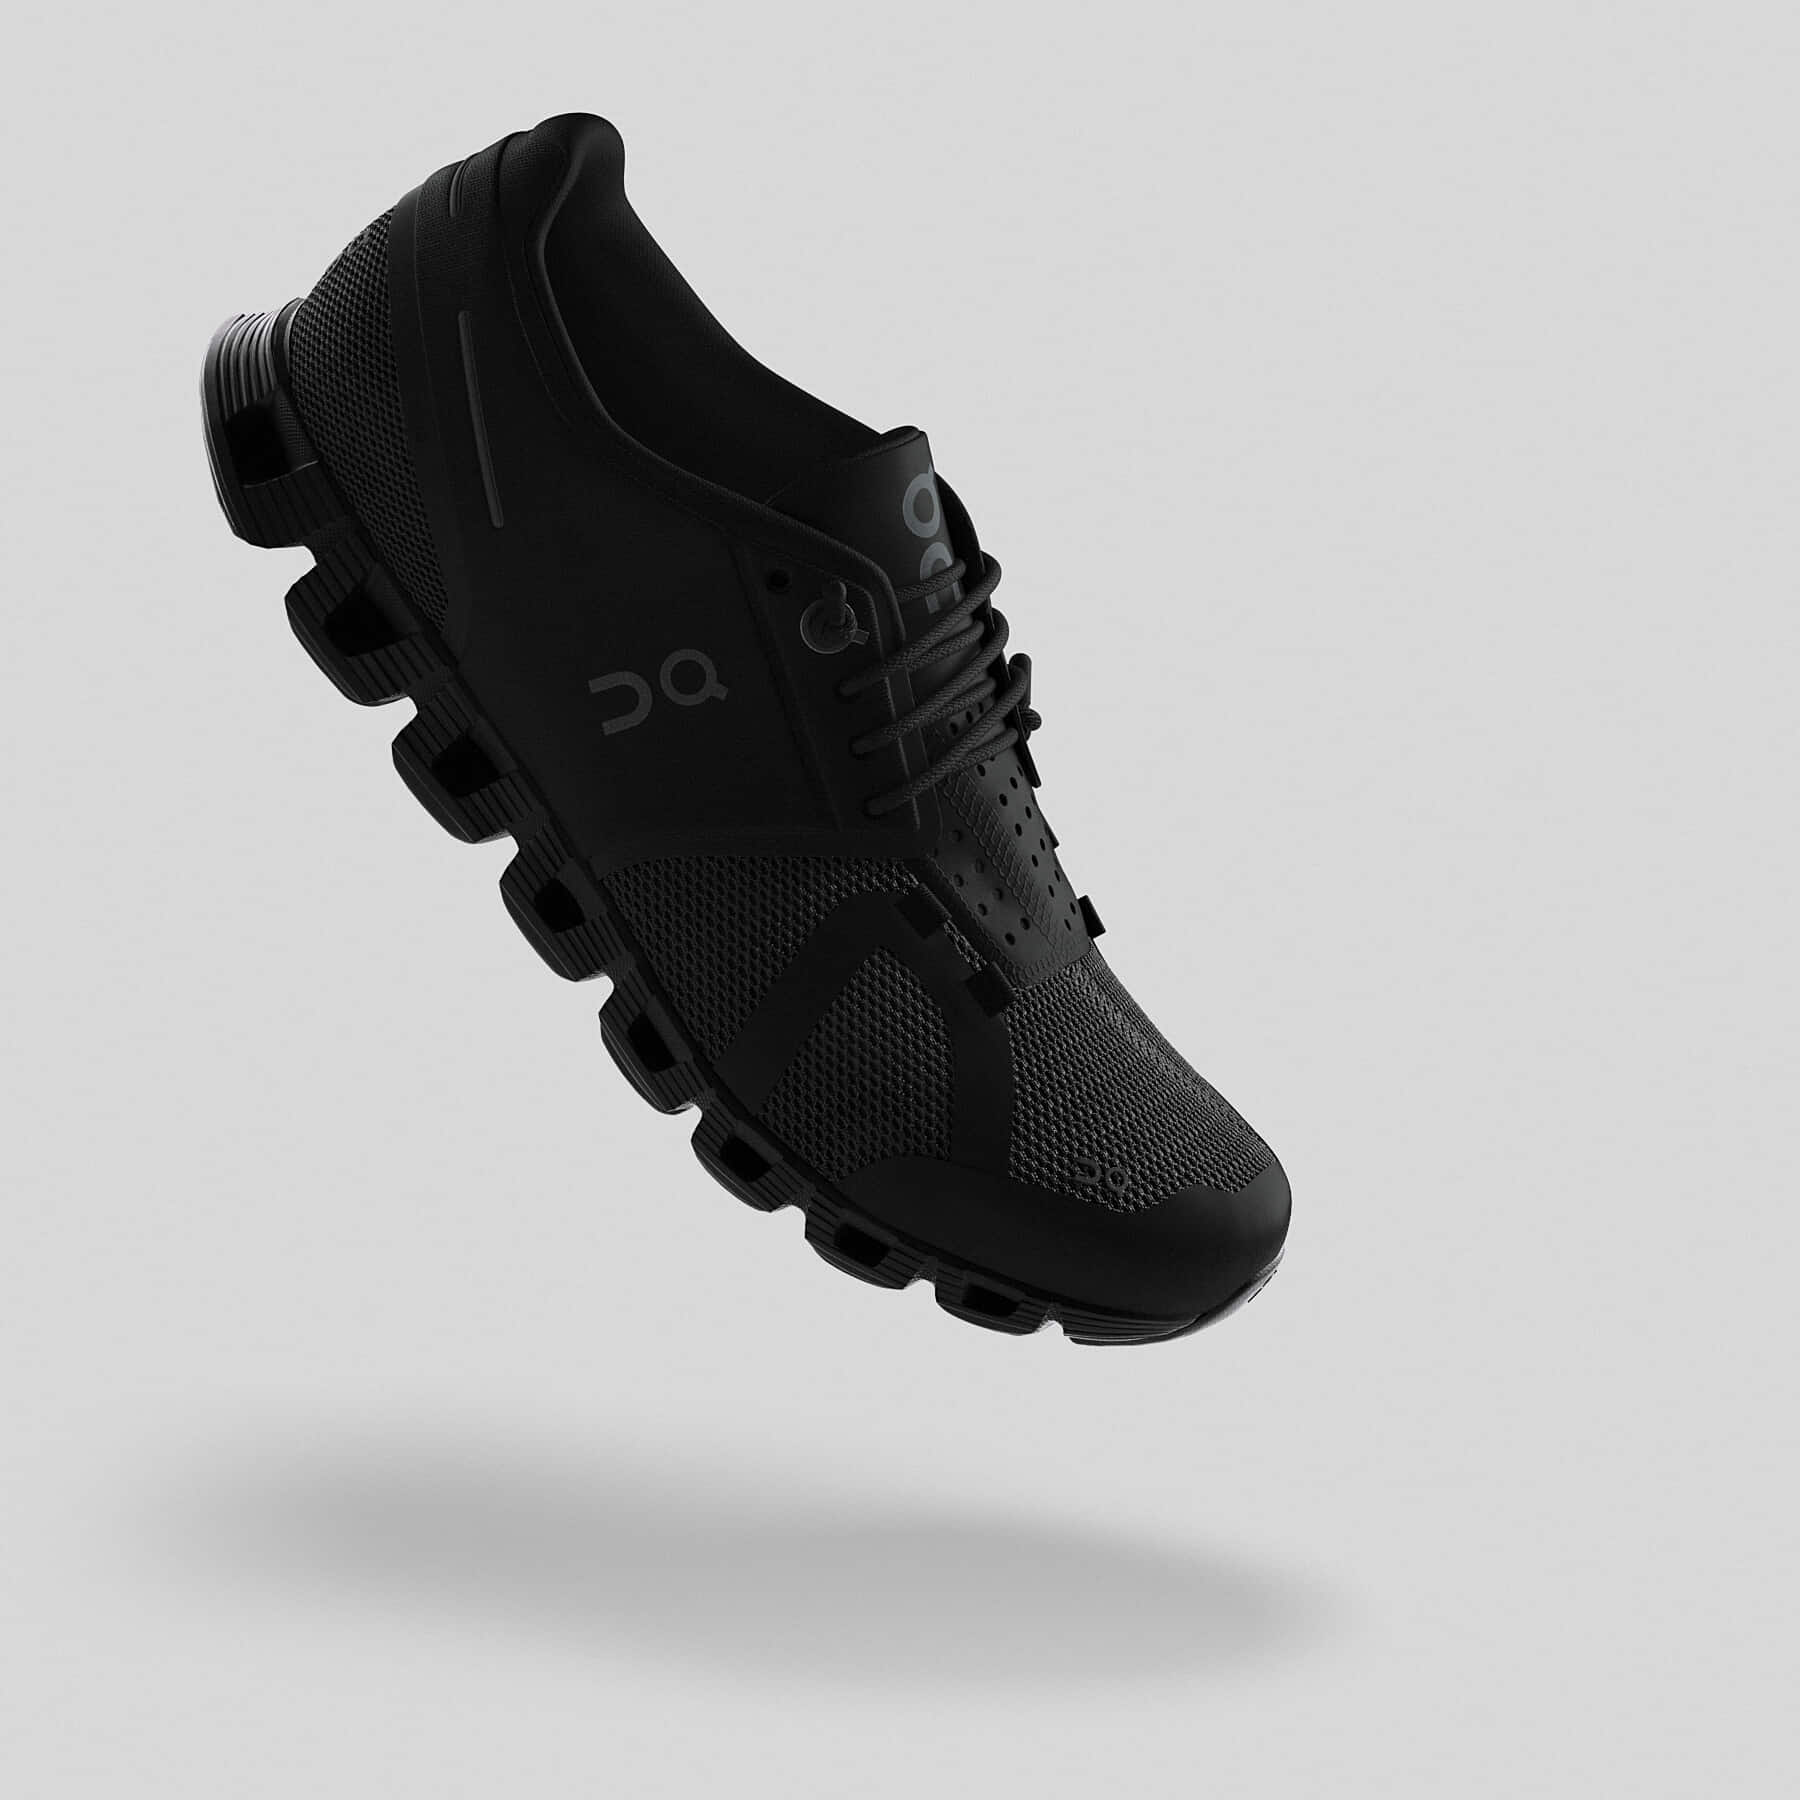 Running On All Black Black Cloud Shoes Men'sOn NOX8w0nkPZ